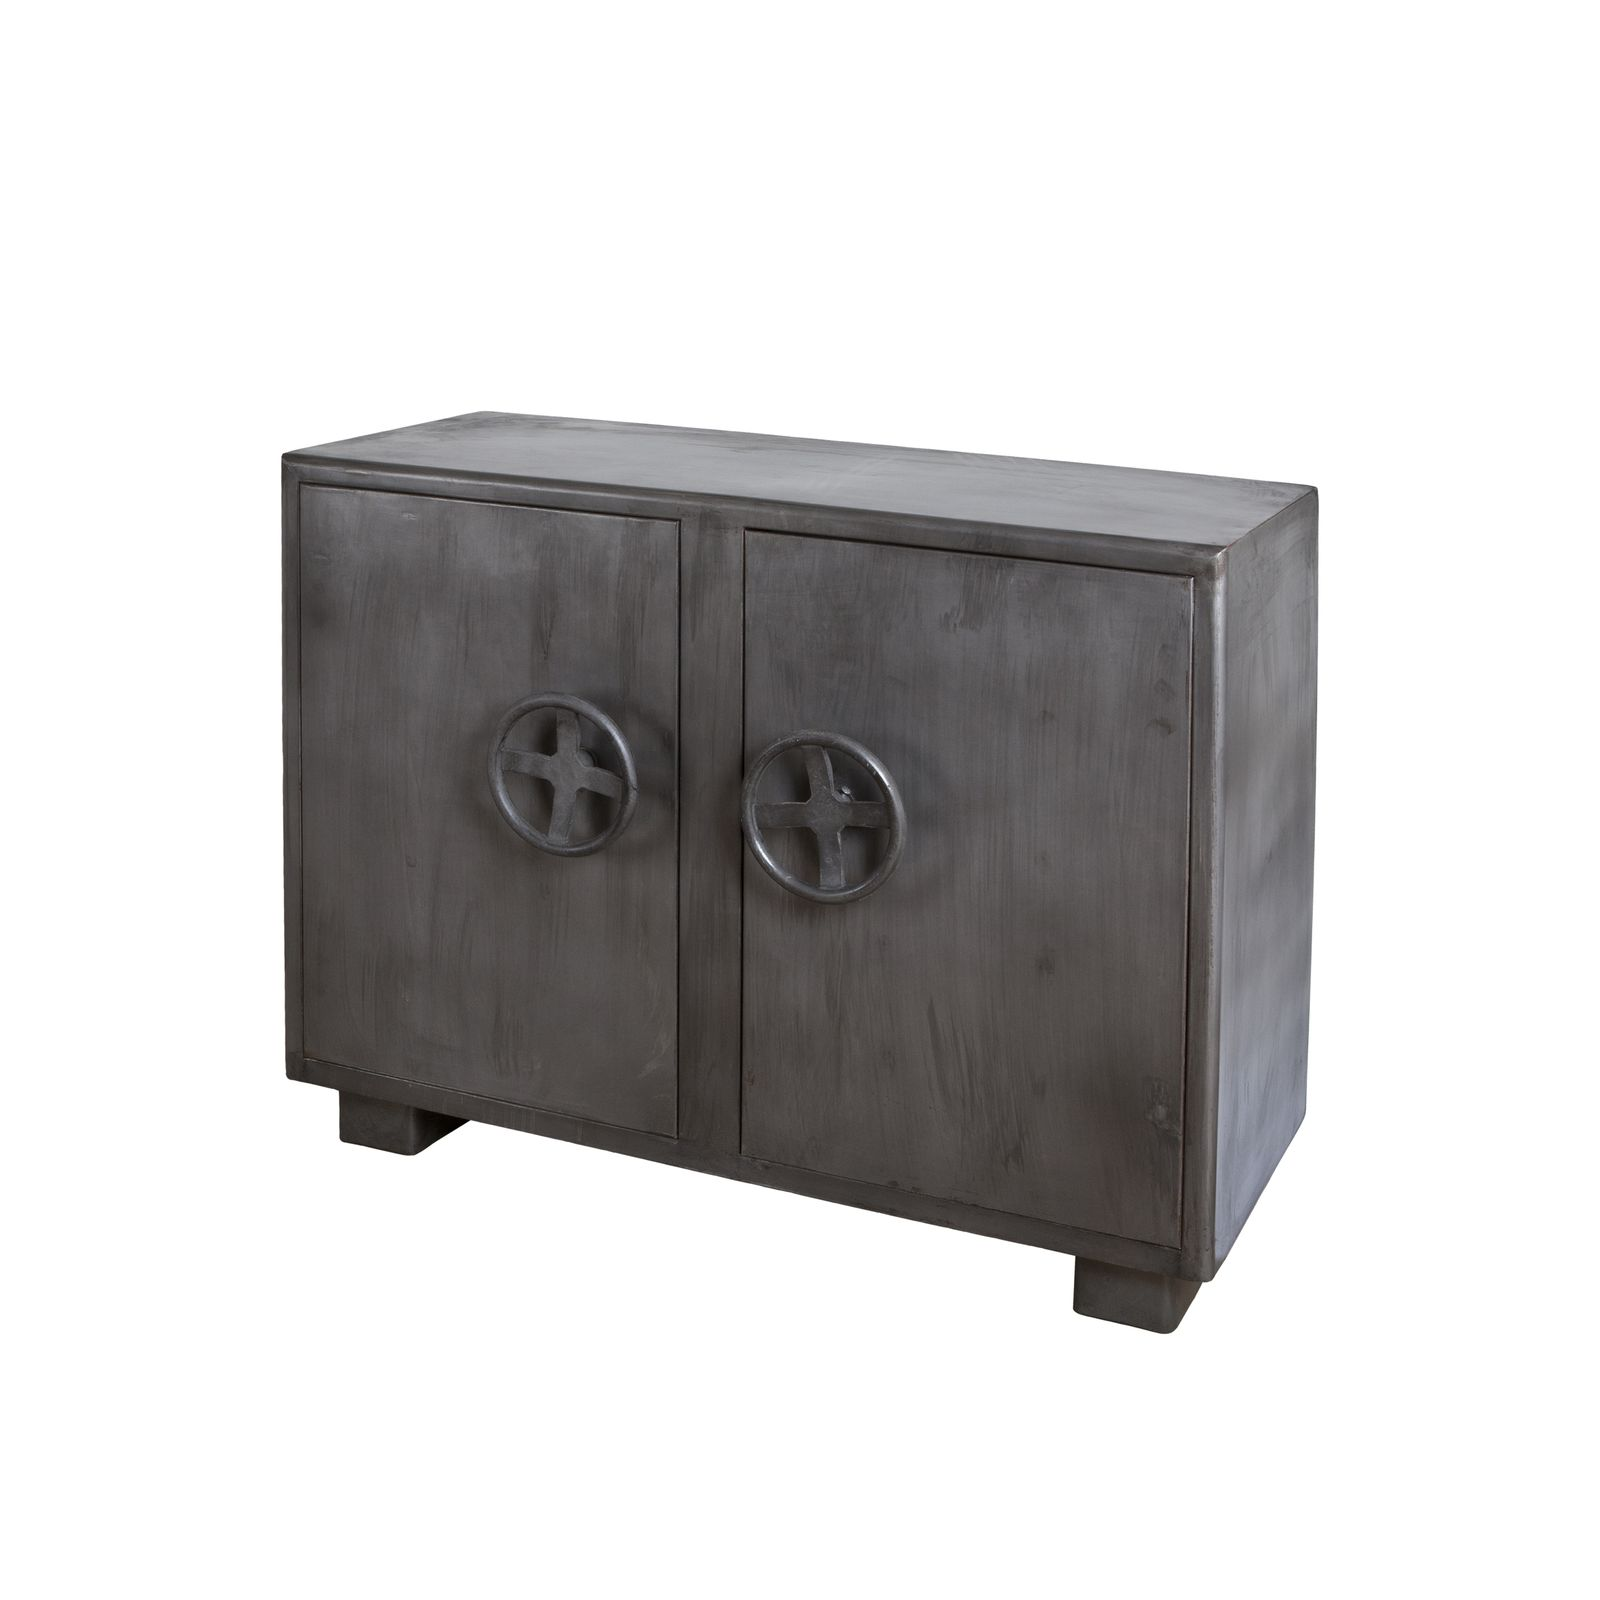 Stoere Lockers dressoir Eleonora